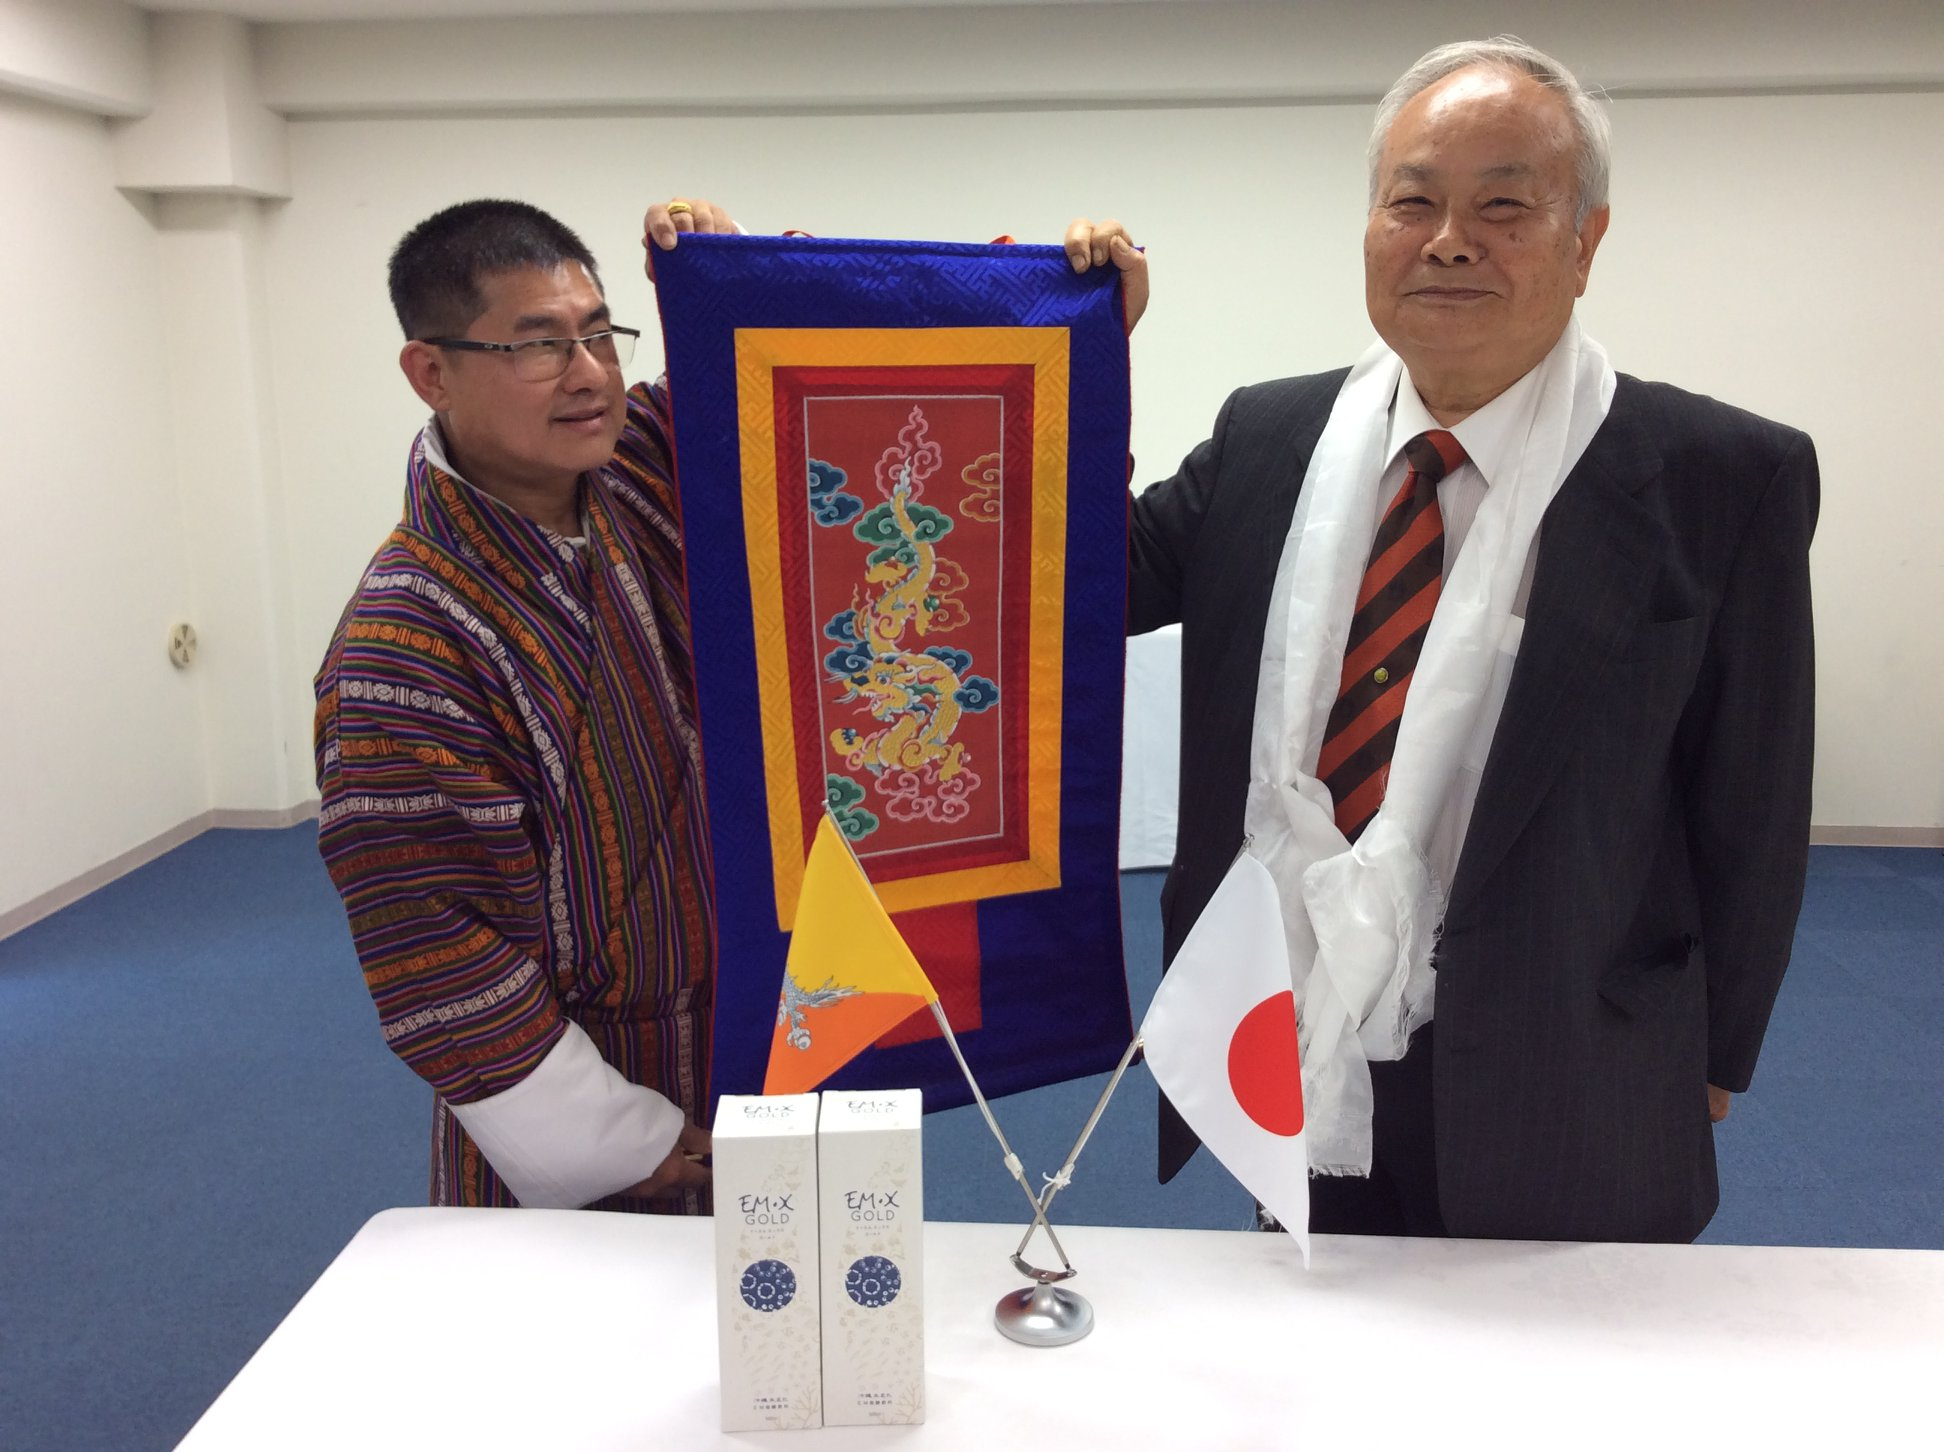 Partner from Bhutan visits Prof. Higa